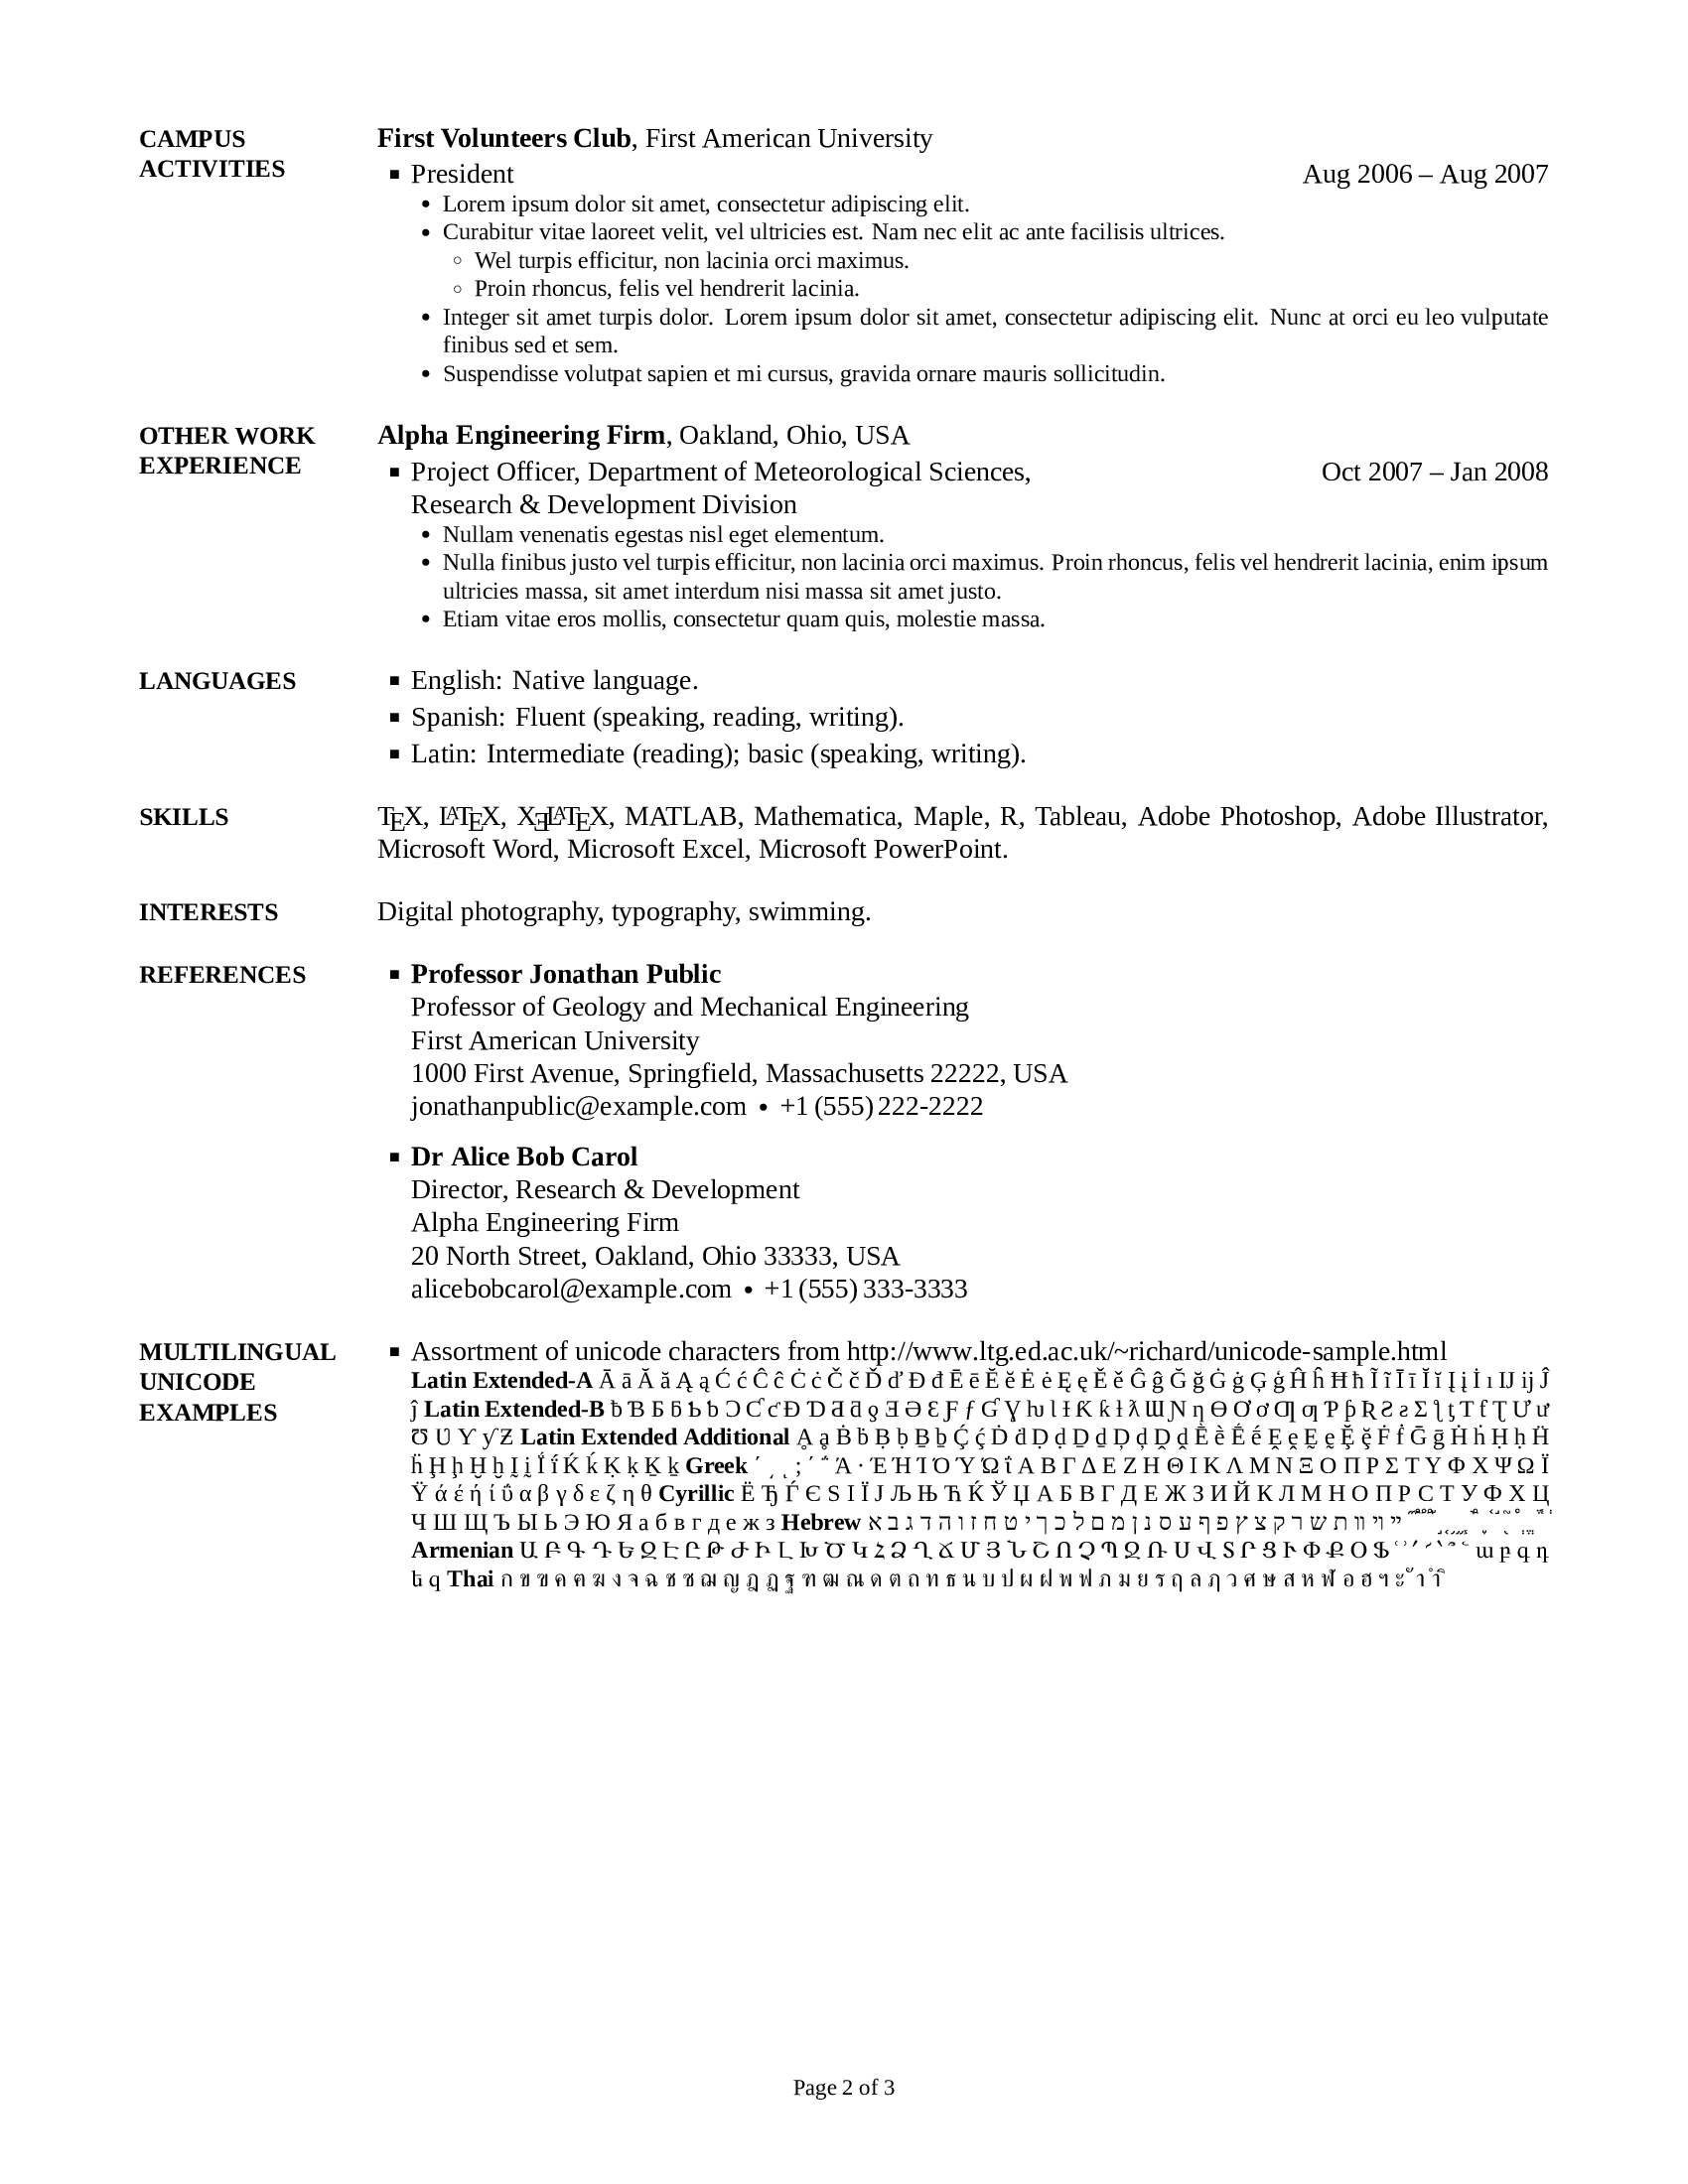 zachscrivena simple resume cv template for a simple cv 02